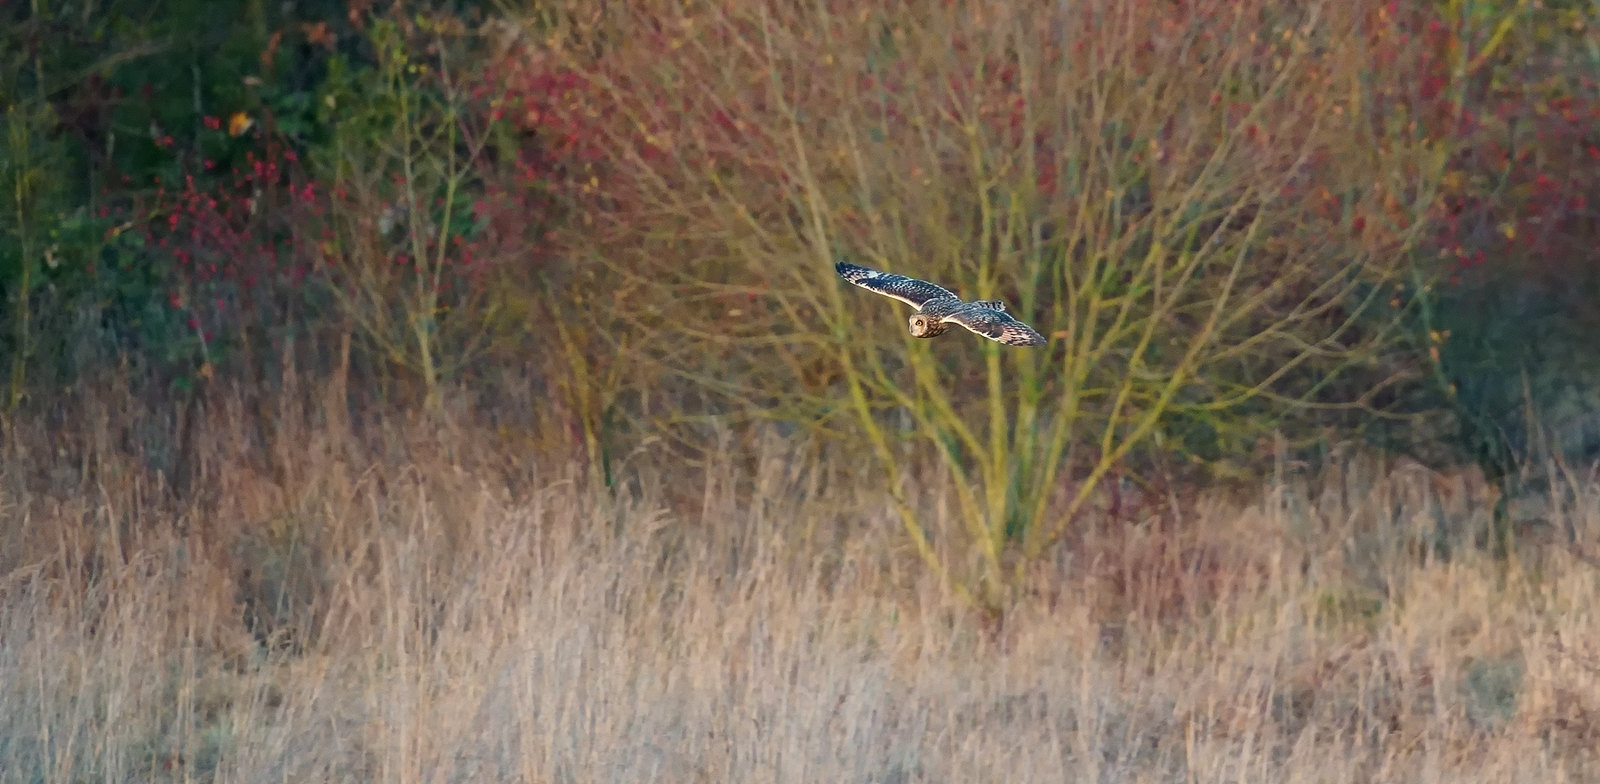 SE Owl/s - always distant, but interesting in the evening light...